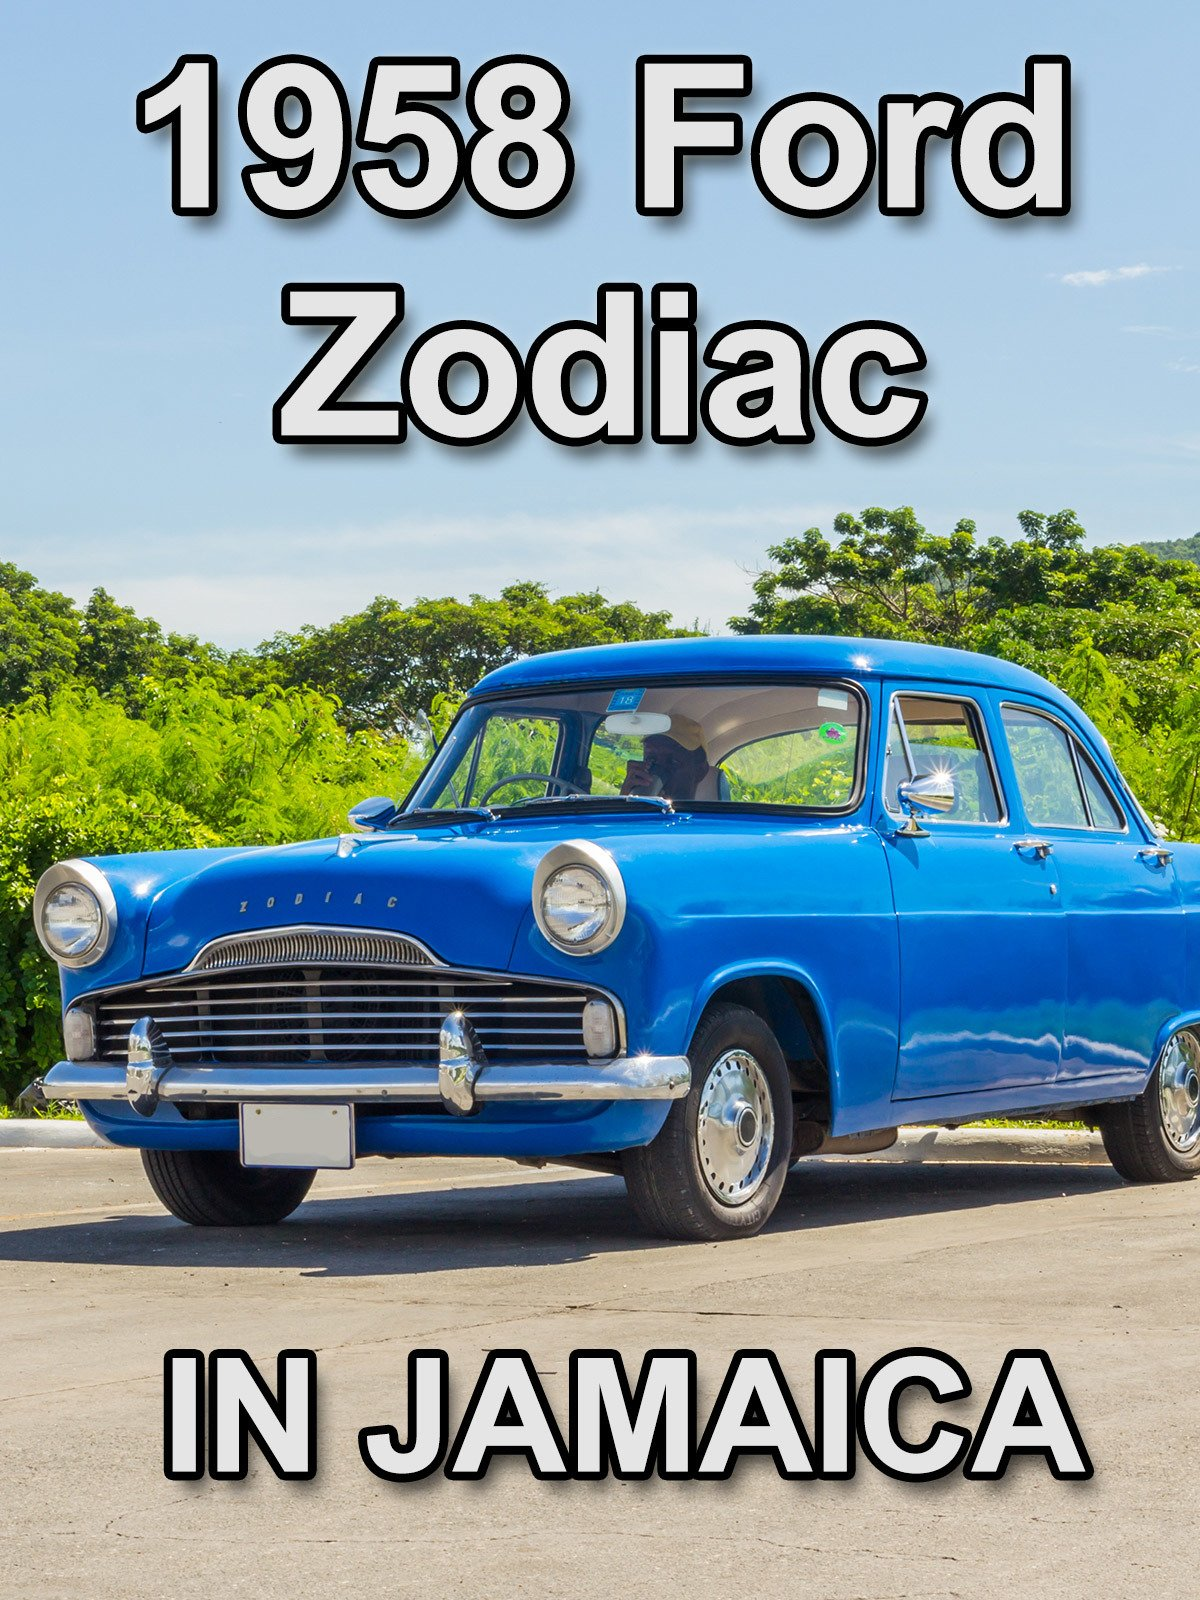 Clip: 1958 Ford Zodiac in Jamaica